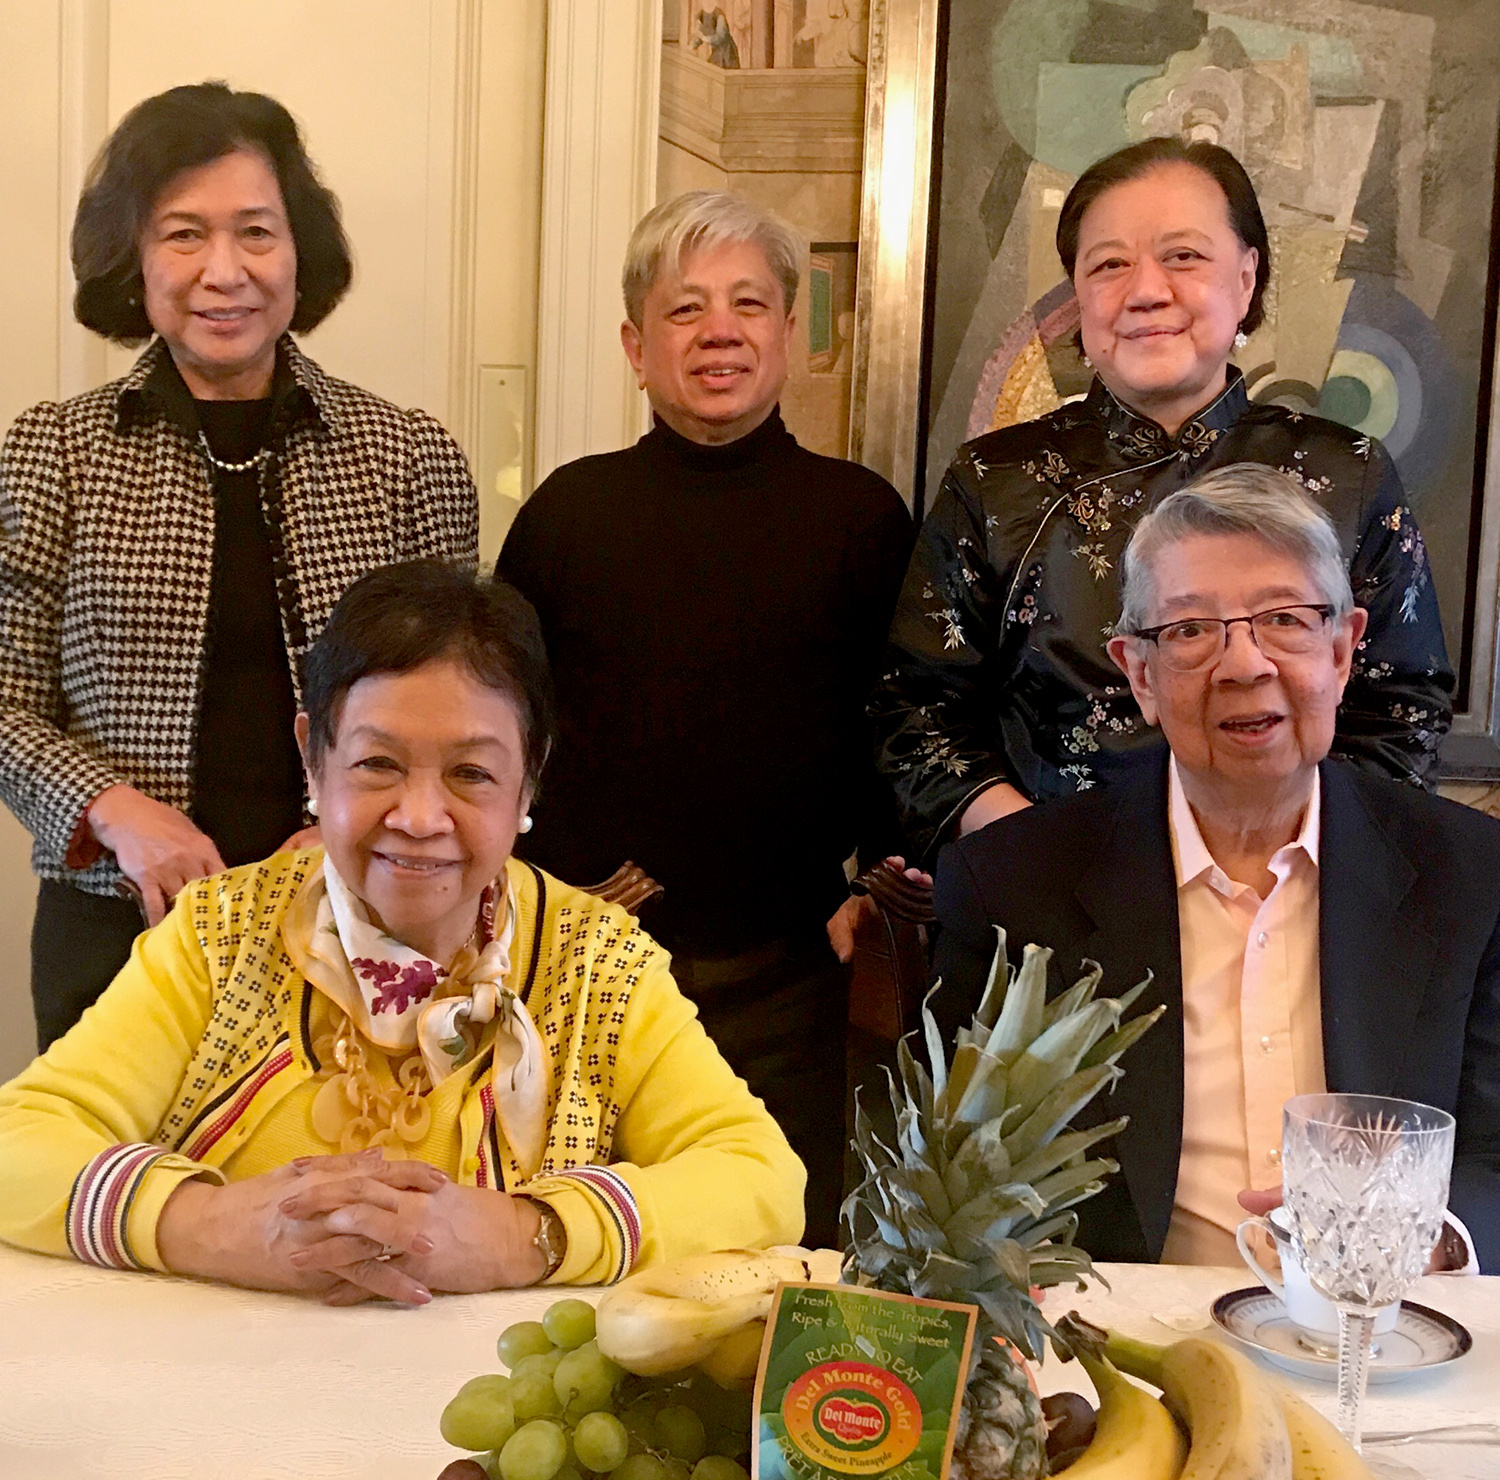 Seated, front row: Lilia and Leo Clemente, Investment Managers. Standing behind them are Loida Nicolas Lewis, Michael Dadap, and Dr. Yeou-Cheng Ma, MD of the Children's Orchestra Society.